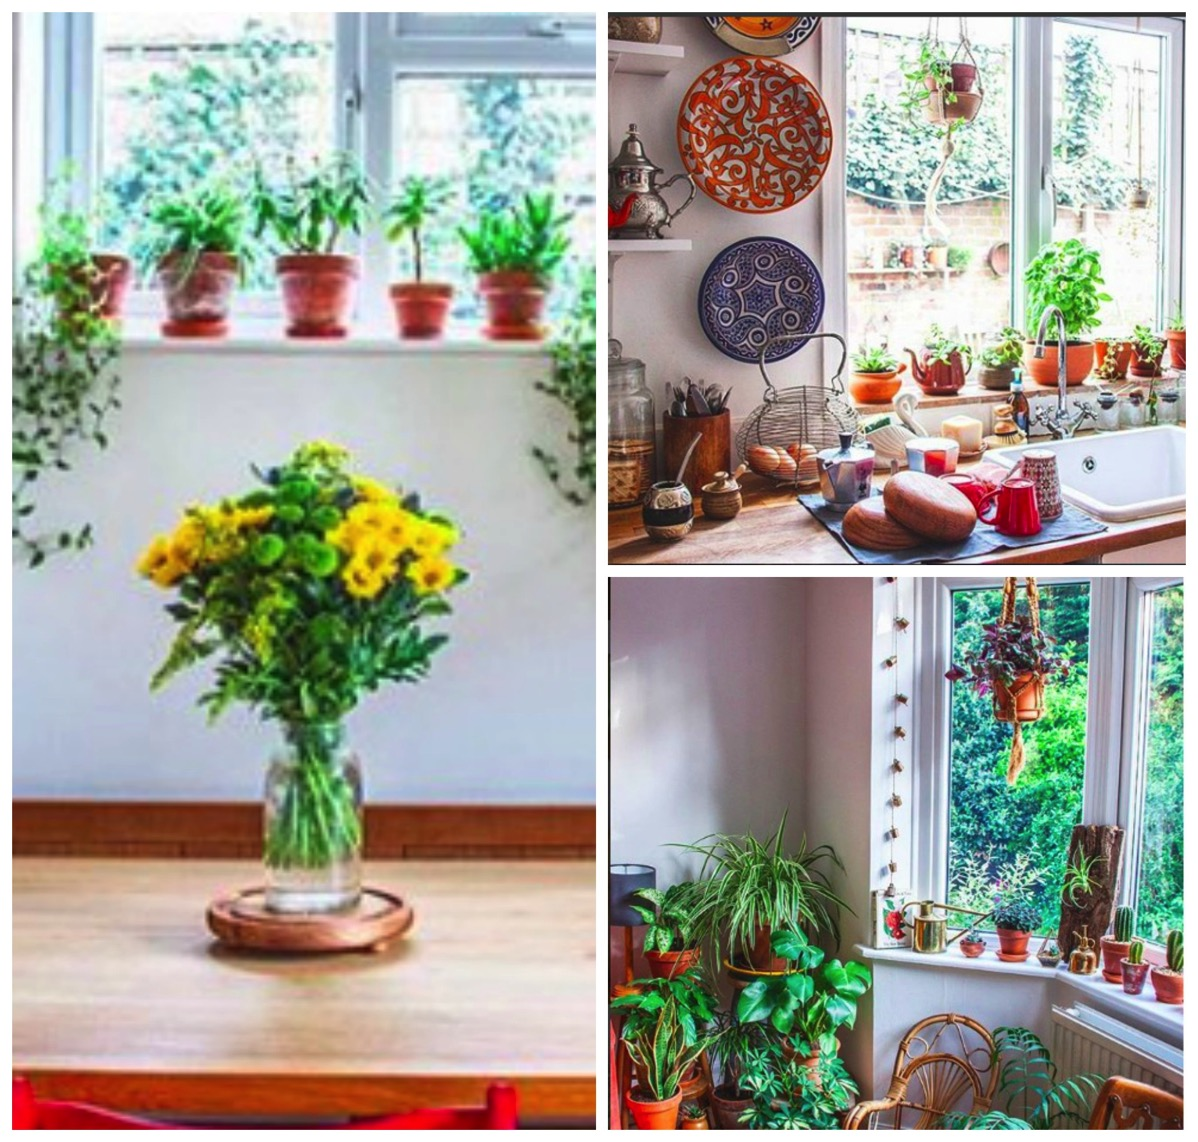 Beautiful plants and windows in boho home of Frida Florentina